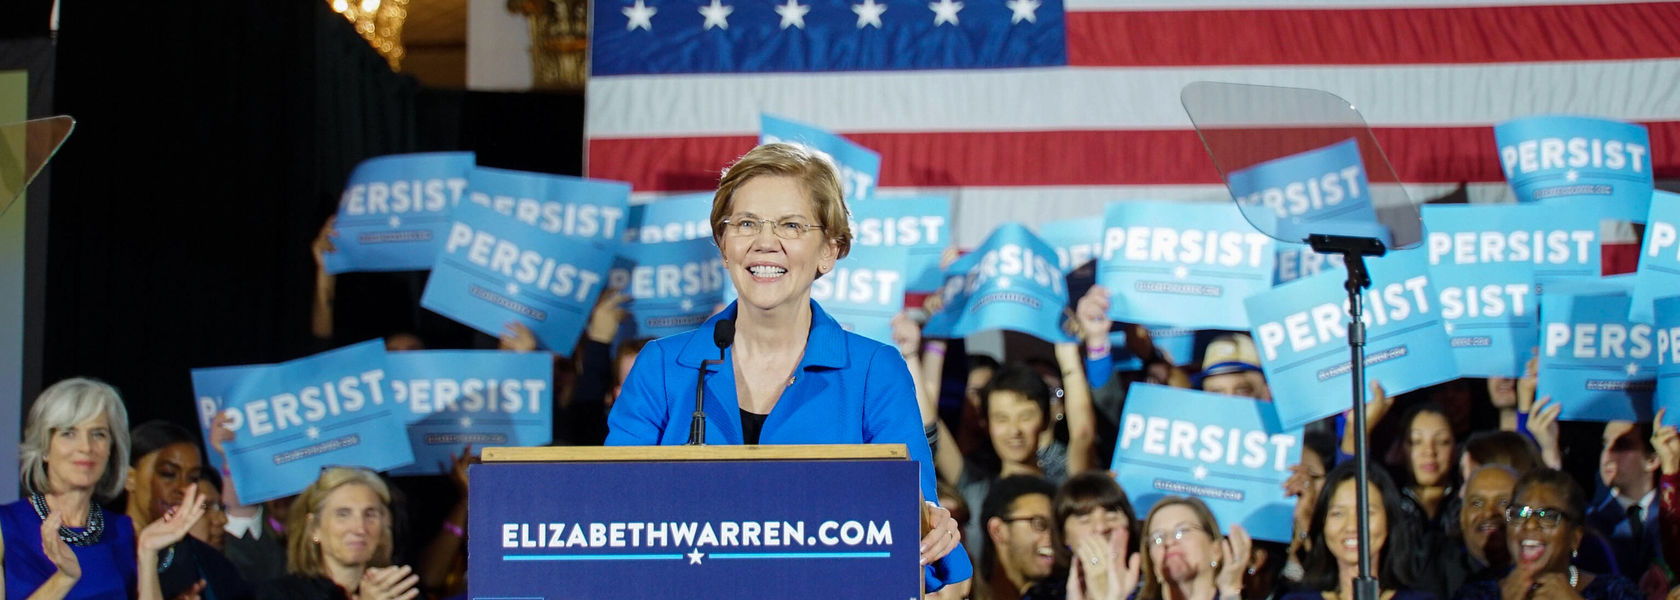 Elizabeth Warren pledges to ban all new petroleum leases, fraccing